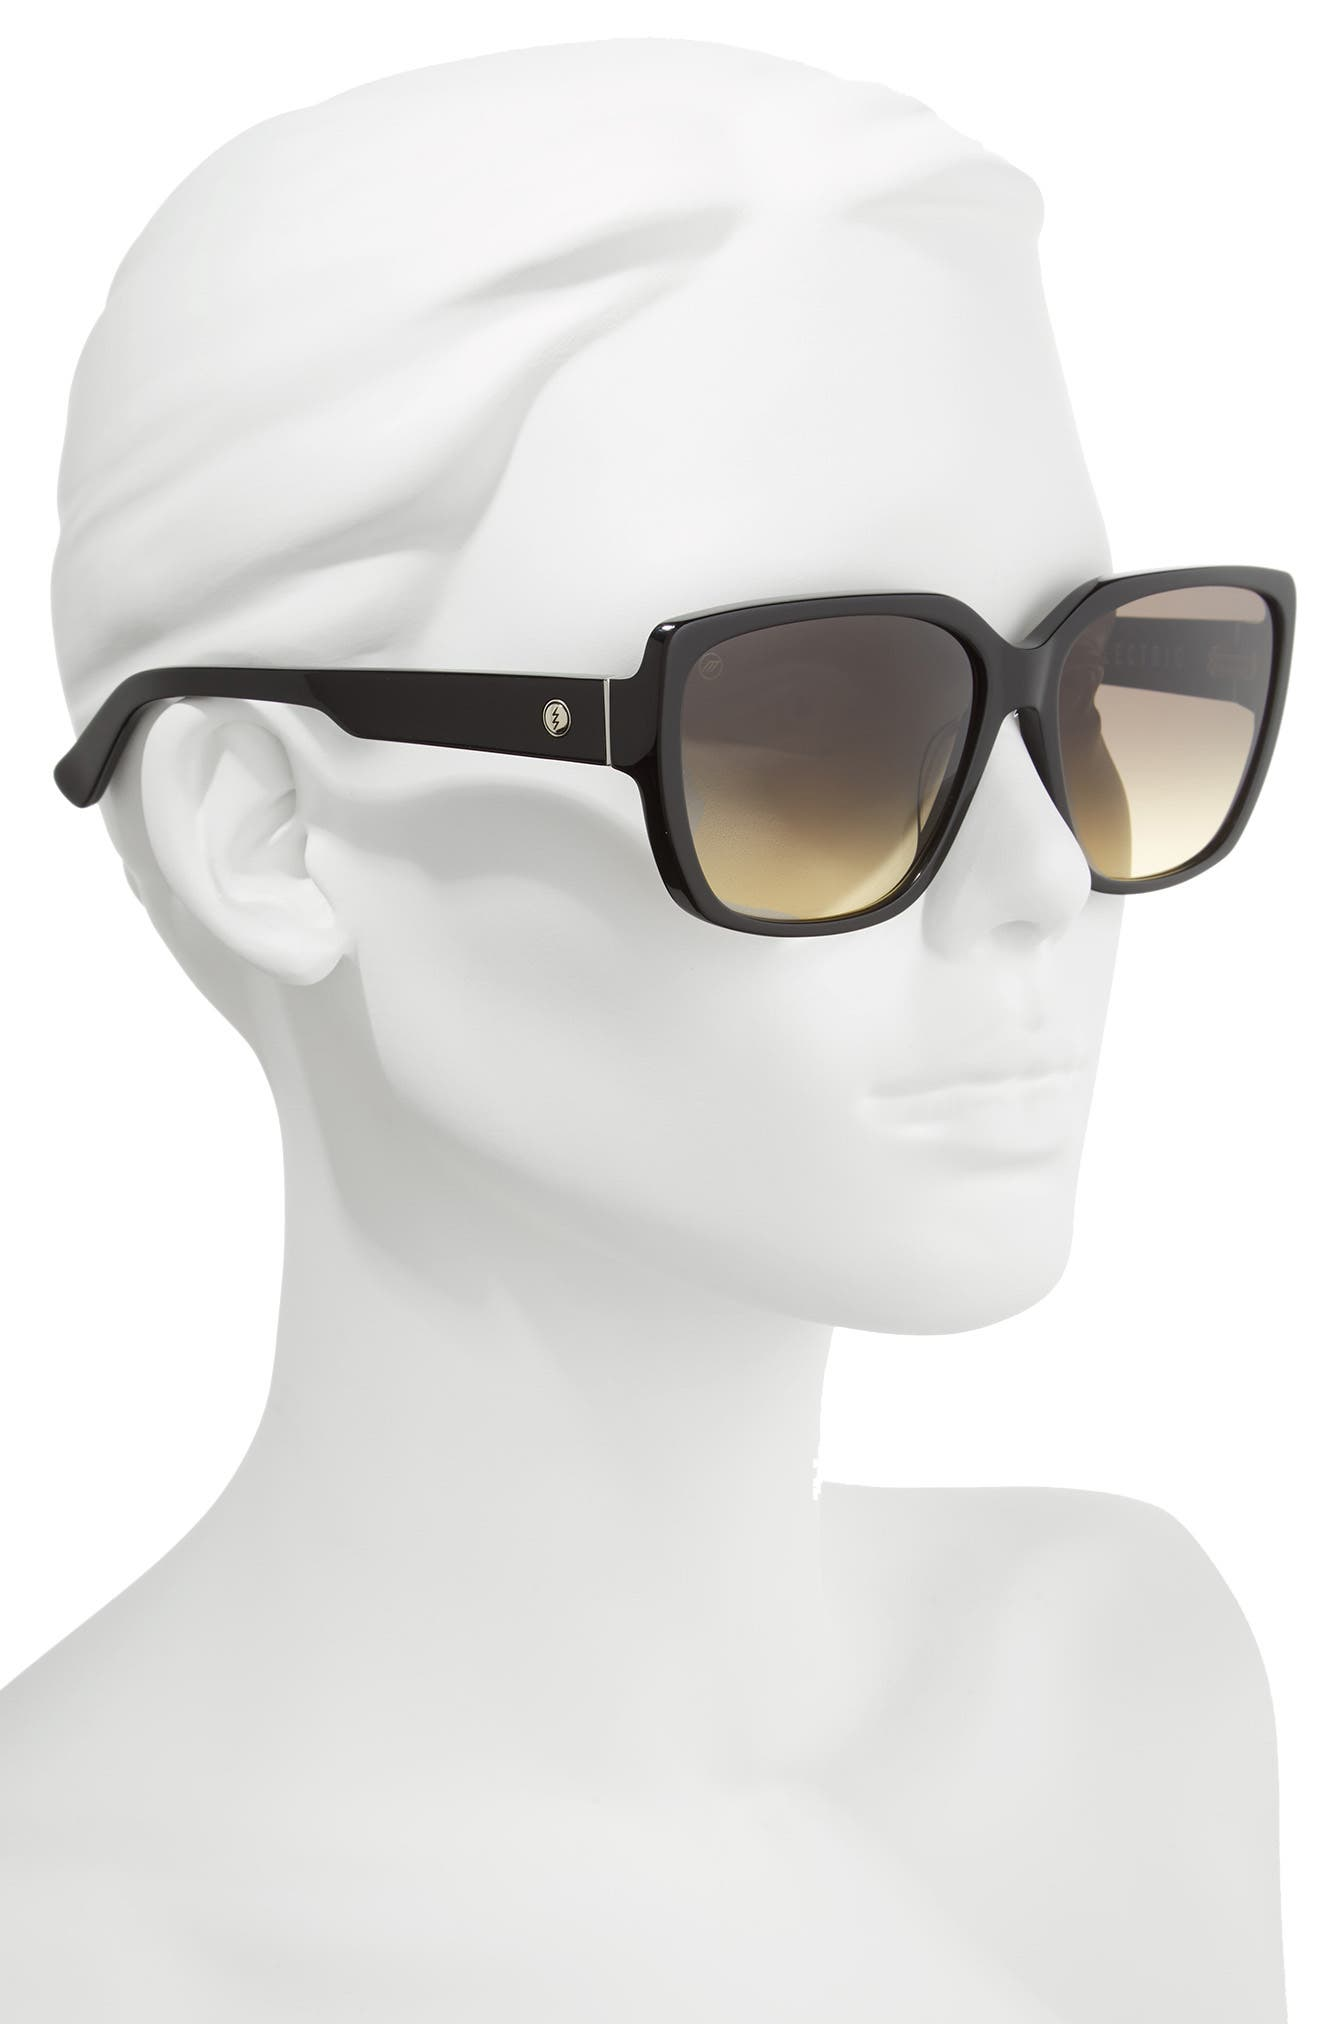 Honey Bee 60mm Mirrored Sunglasses,                             Alternate thumbnail 2, color,                             001